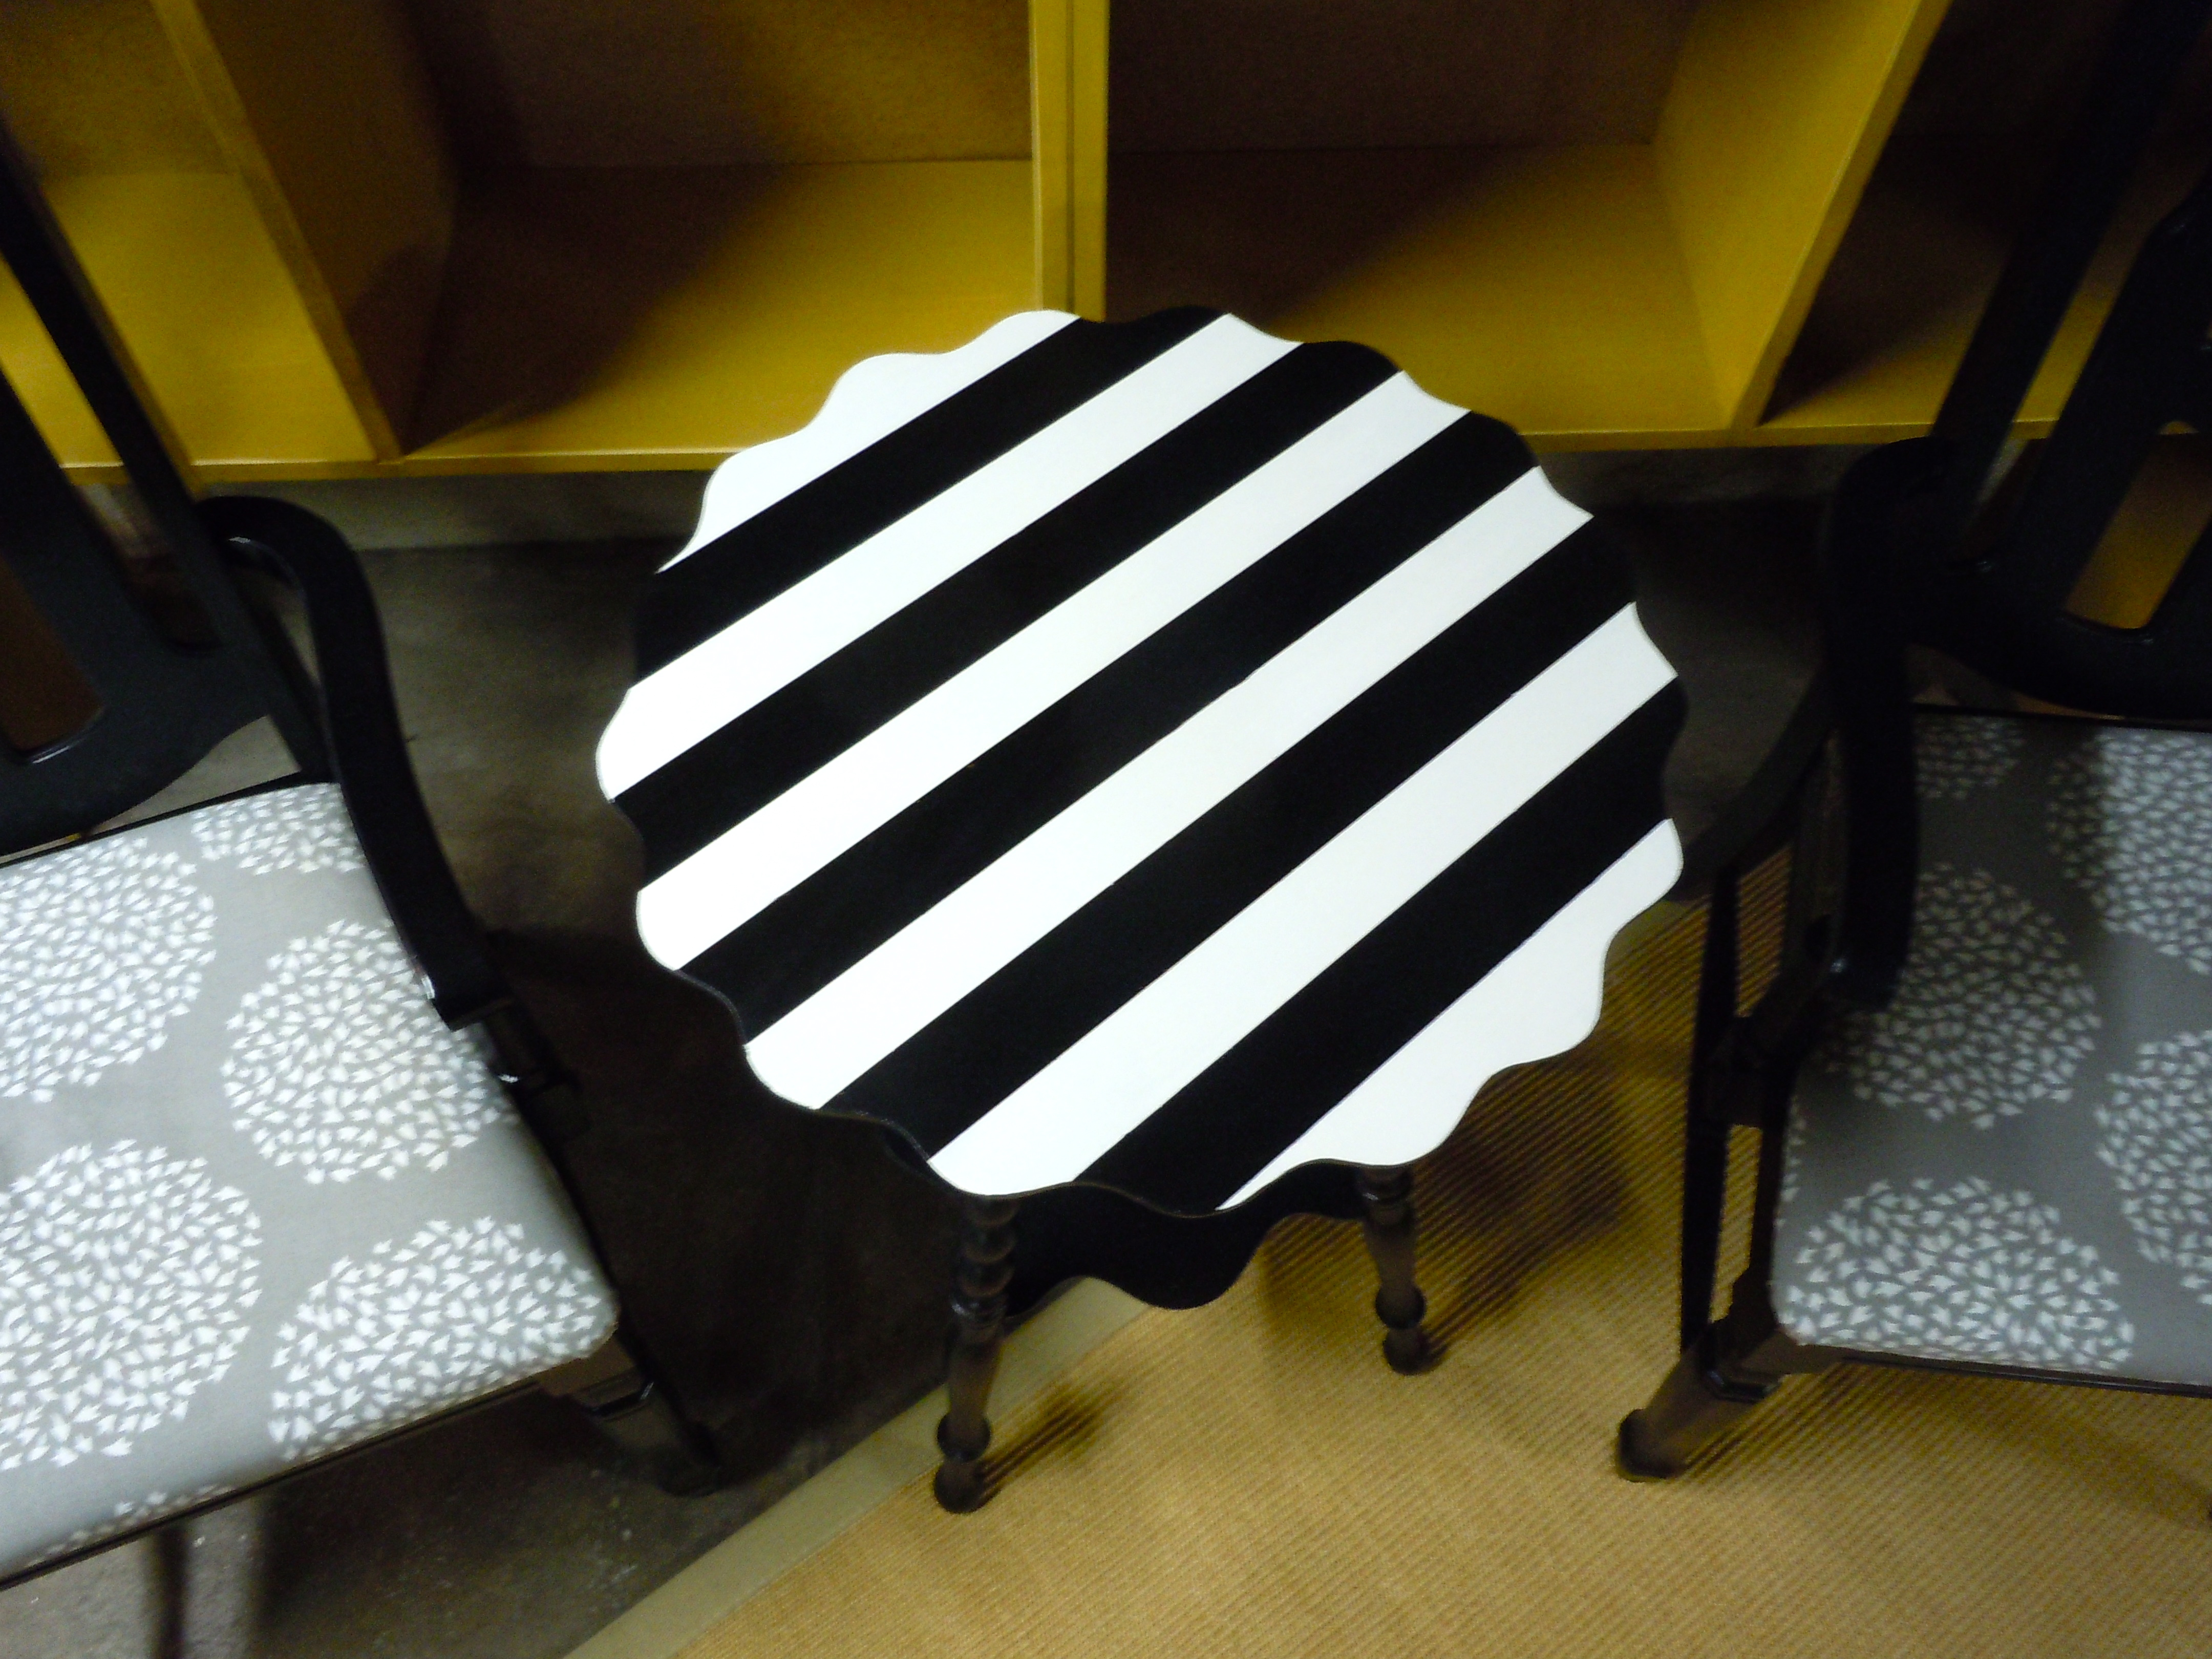 How to paint stripes on furniture suitepotato - Painting stripes on furniture ...